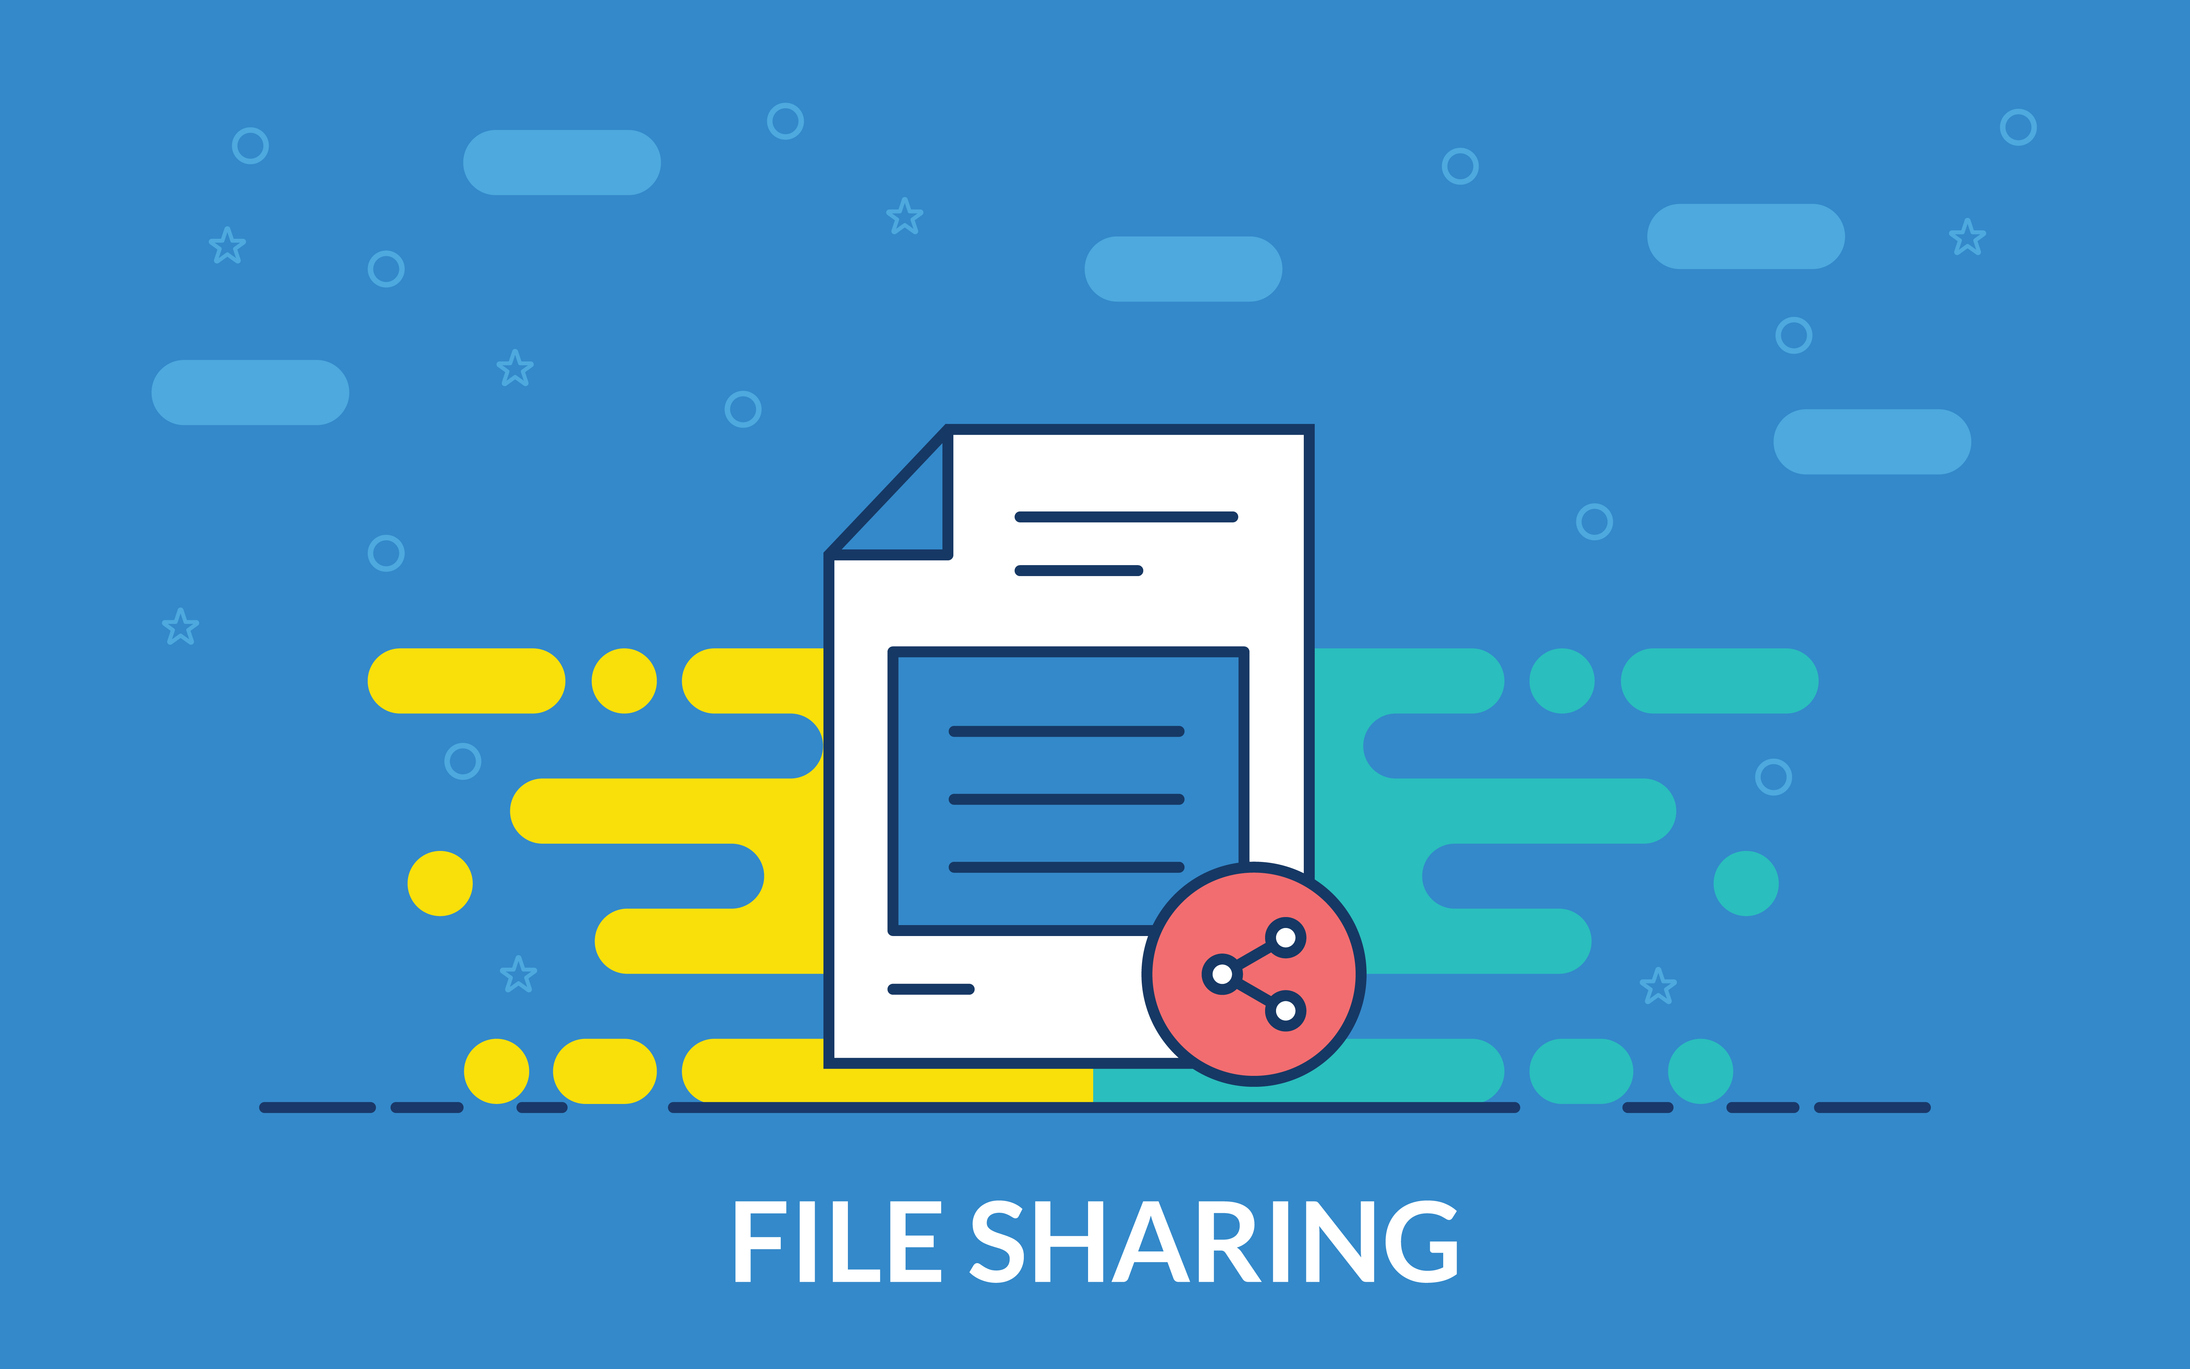 Businesses need secure file sharing of all types and sizes with their customers and partners through what can be very complex multi-enterprise ecosystems.